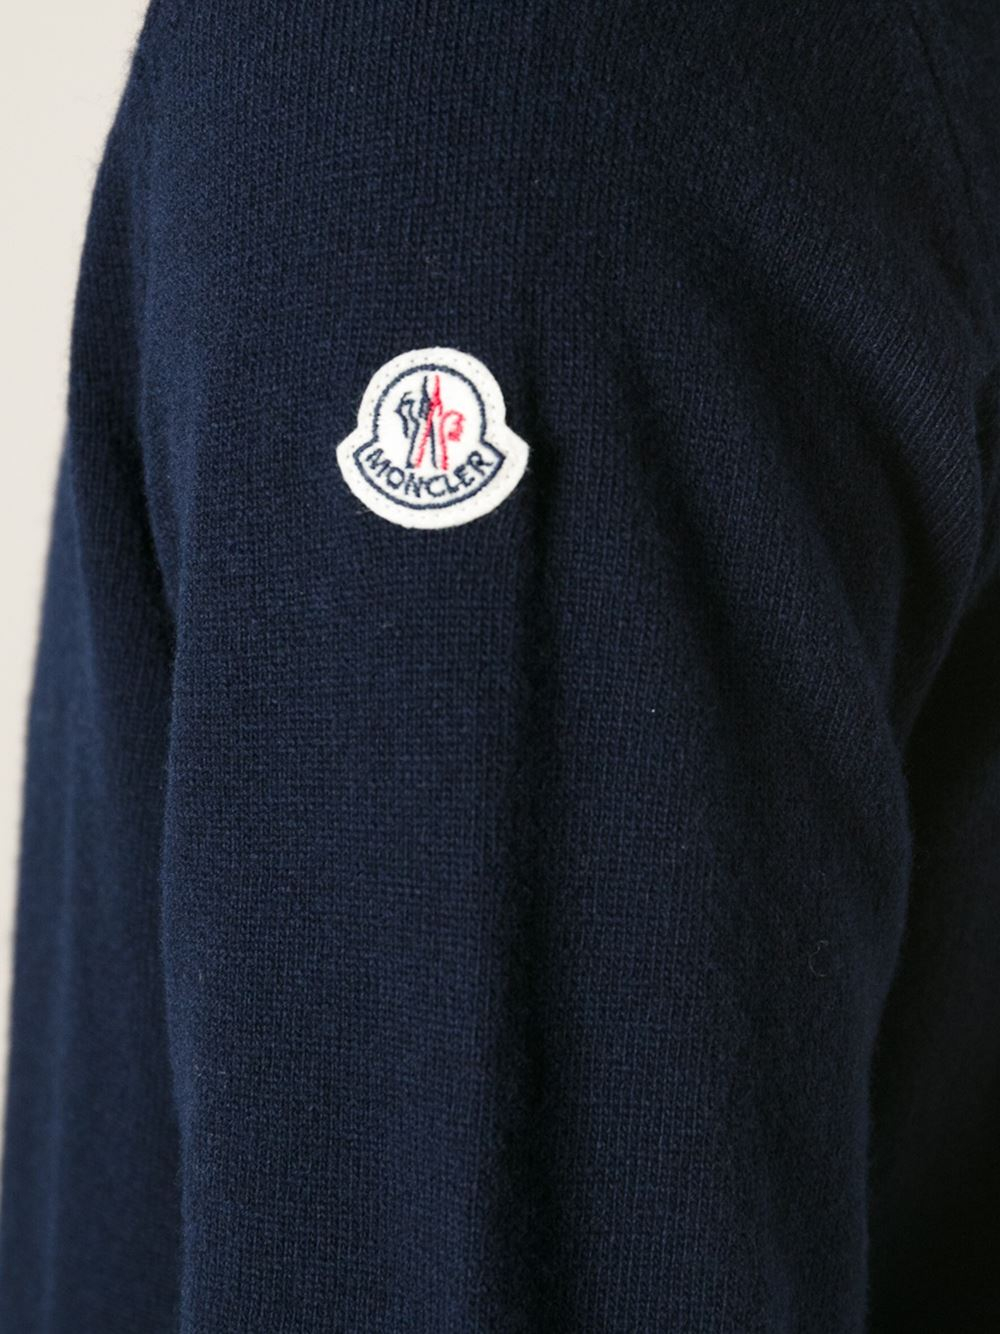 moncler sweater mens